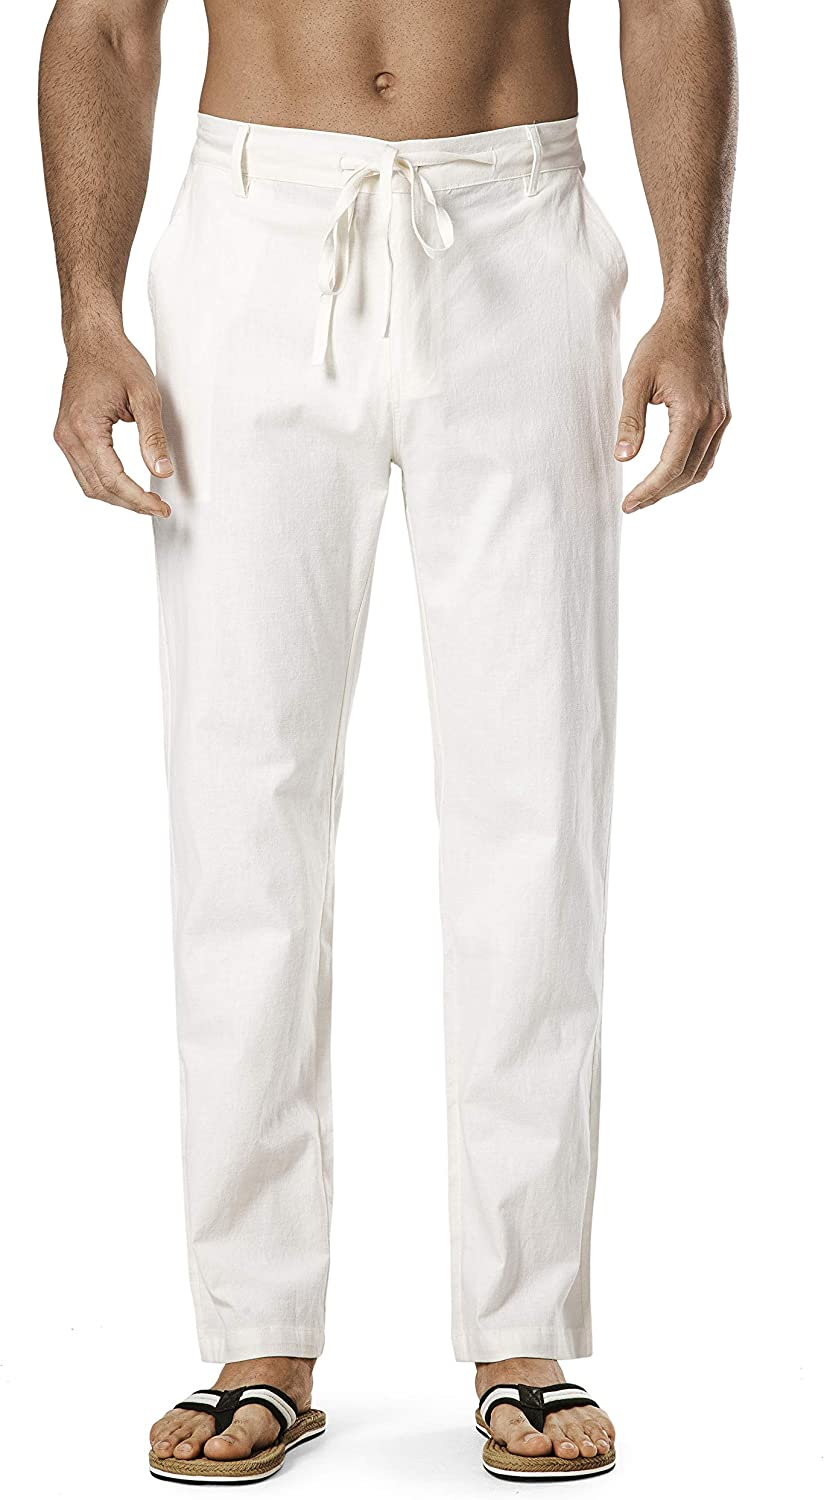 Popular products DELCARINO Men's Drawstring Linen Relaxed-Fit Pant Waist Elastic Reservation